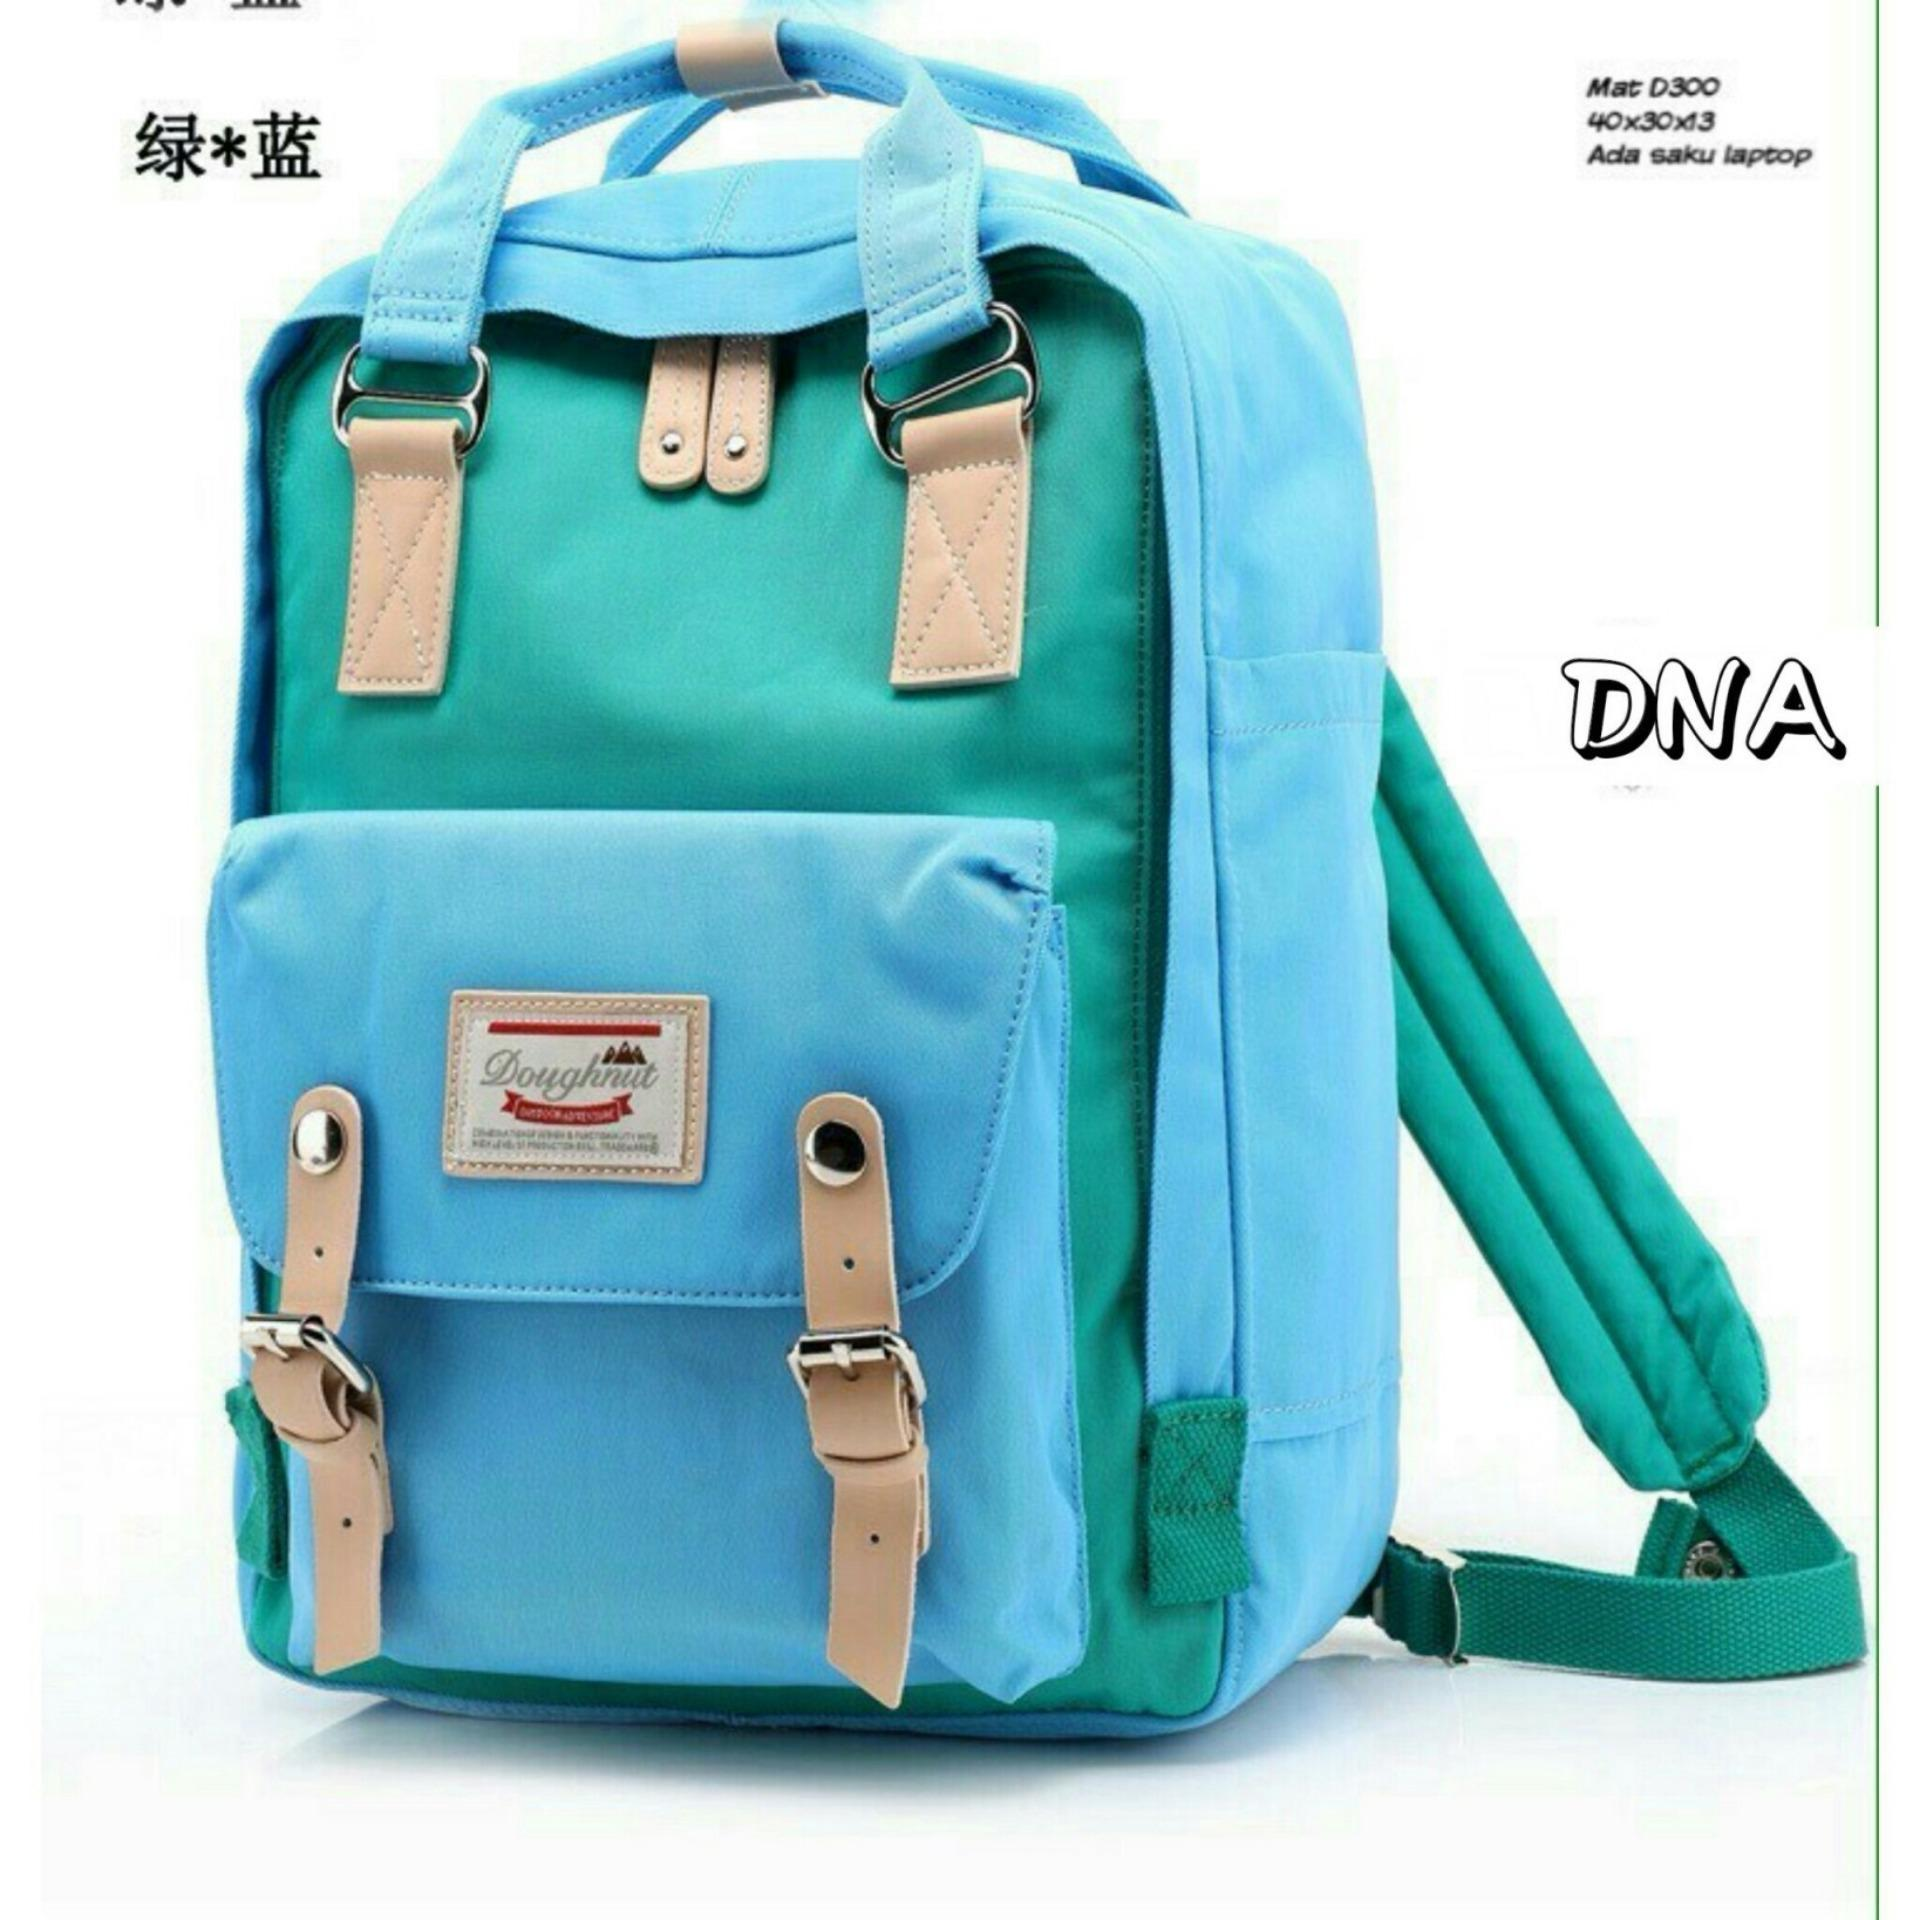 Backpack Korean Style Dough bination 2 Colors Tas Ransel Wanita Korean Style Blue